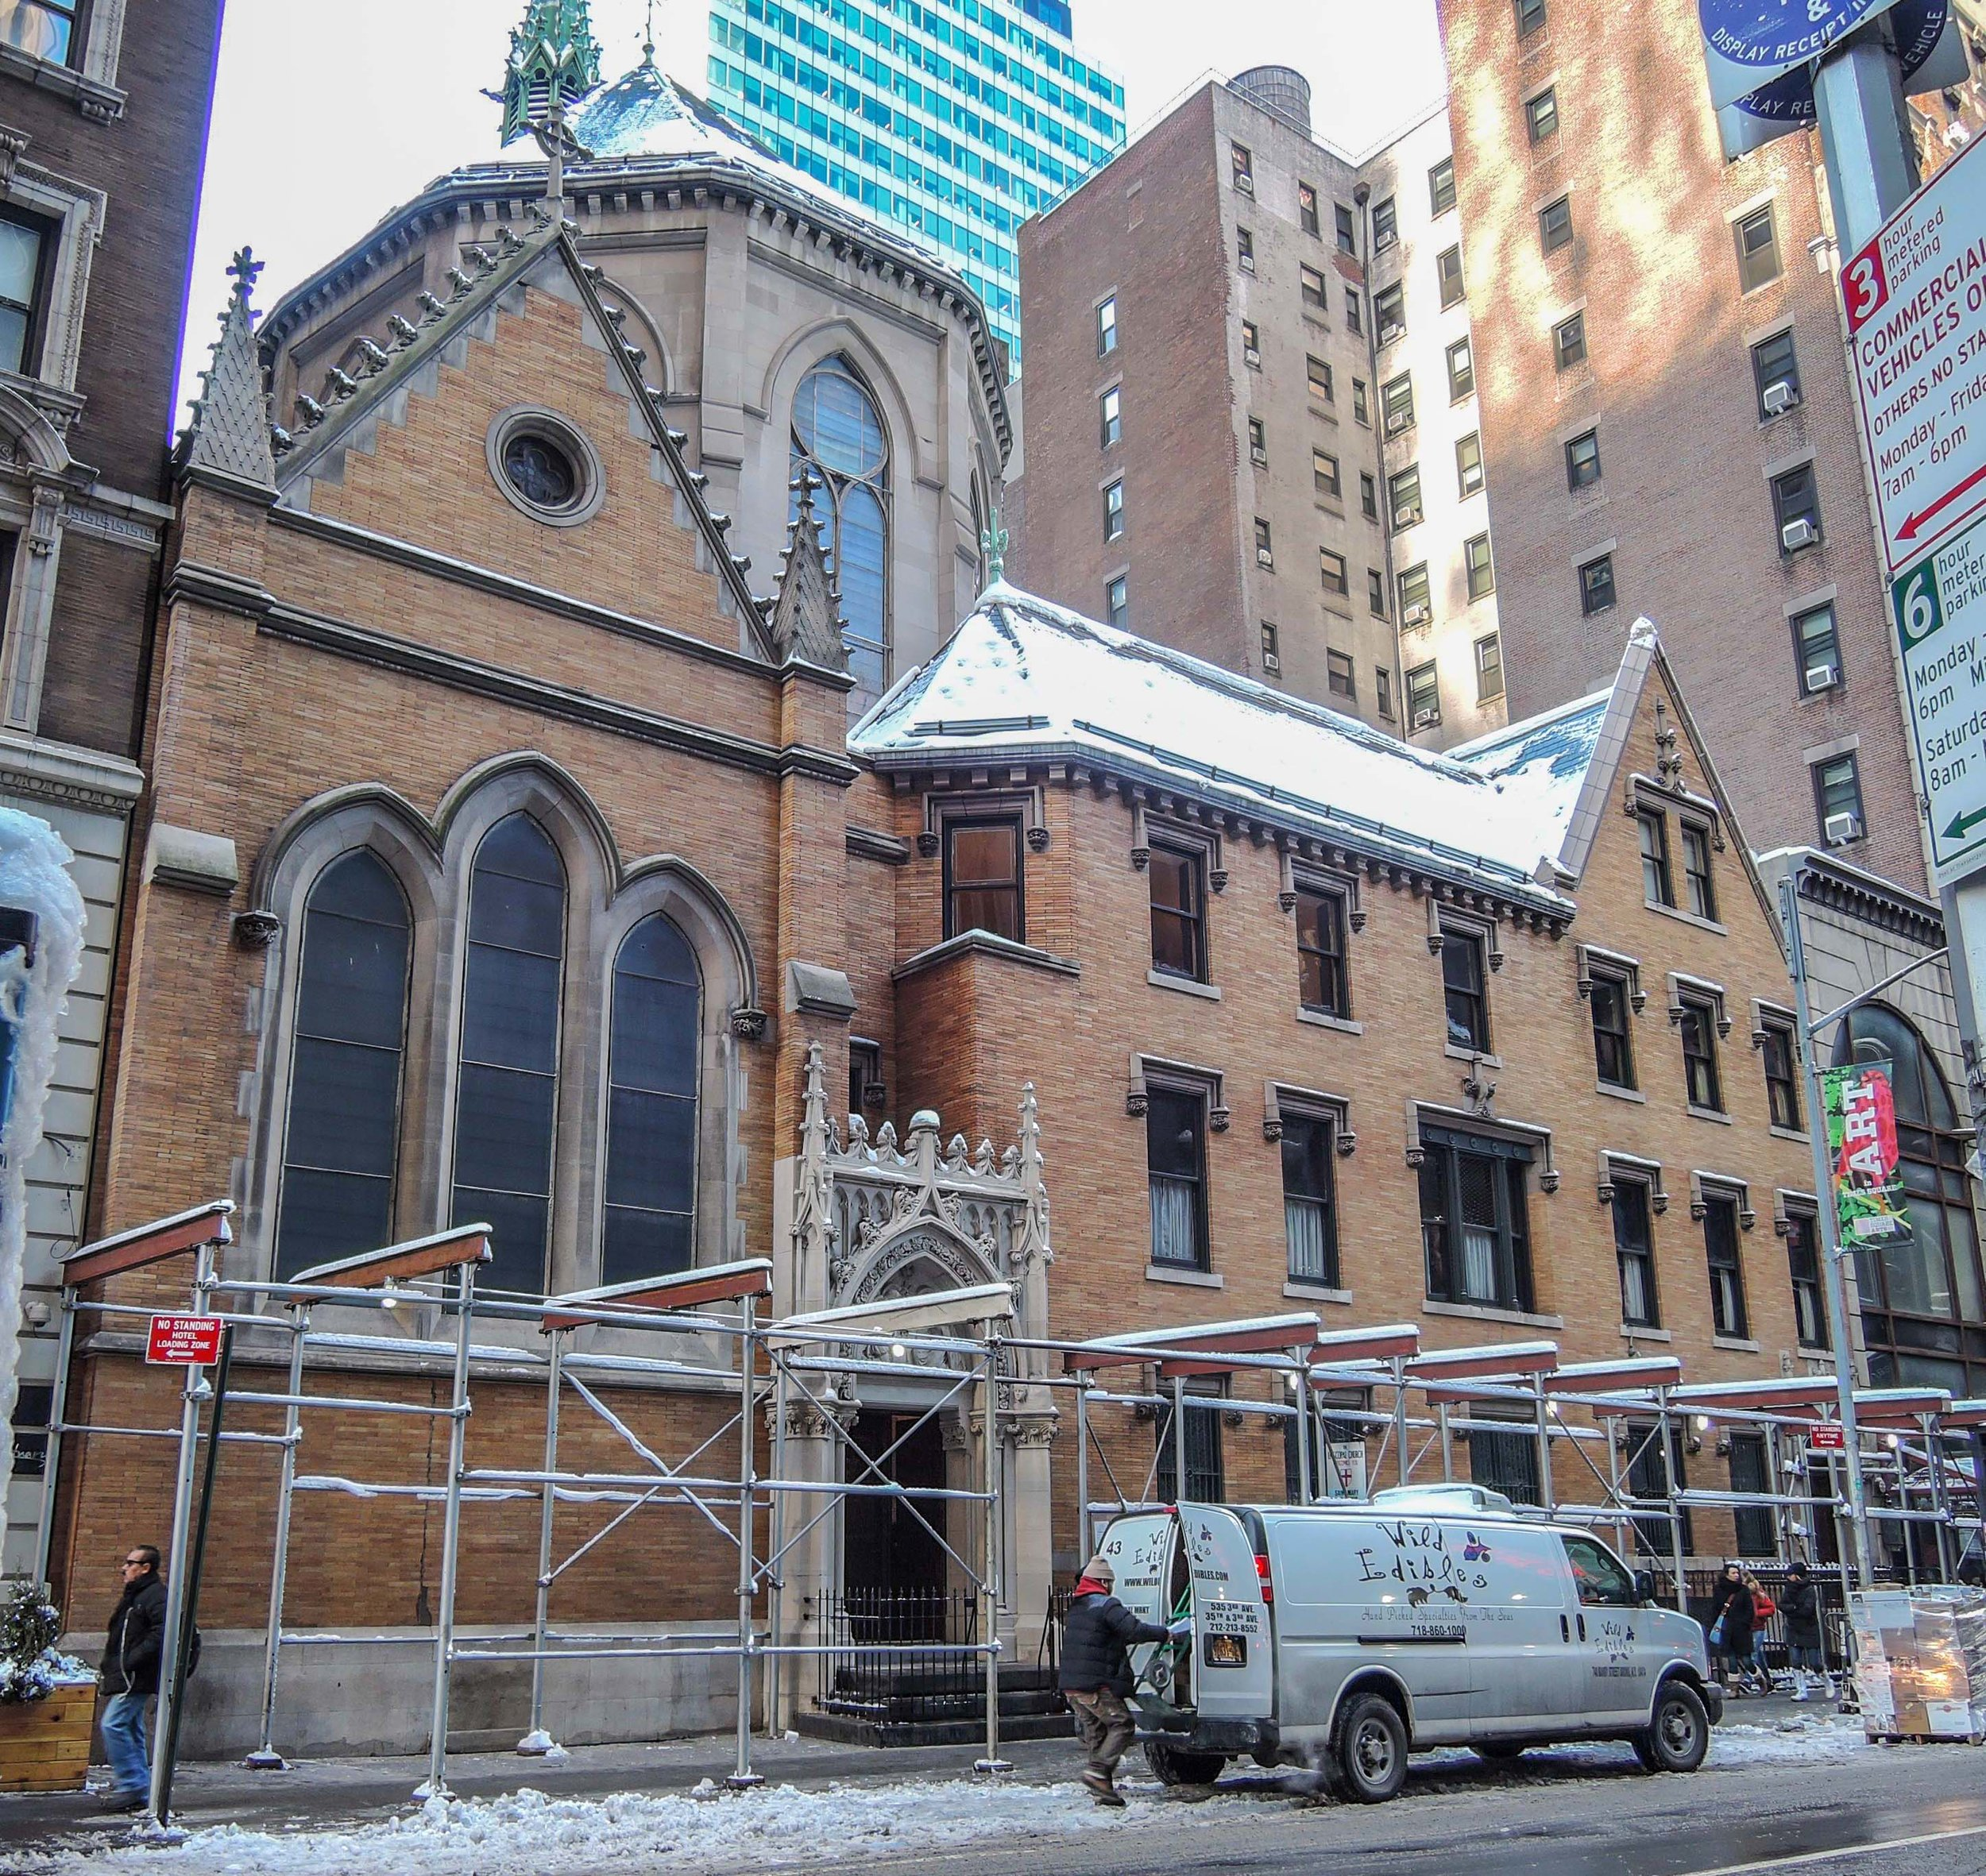 A snowstorm on Thursday, February 9, has postponed the removal of the last of the scaffolding on West 47th Street    until next week.